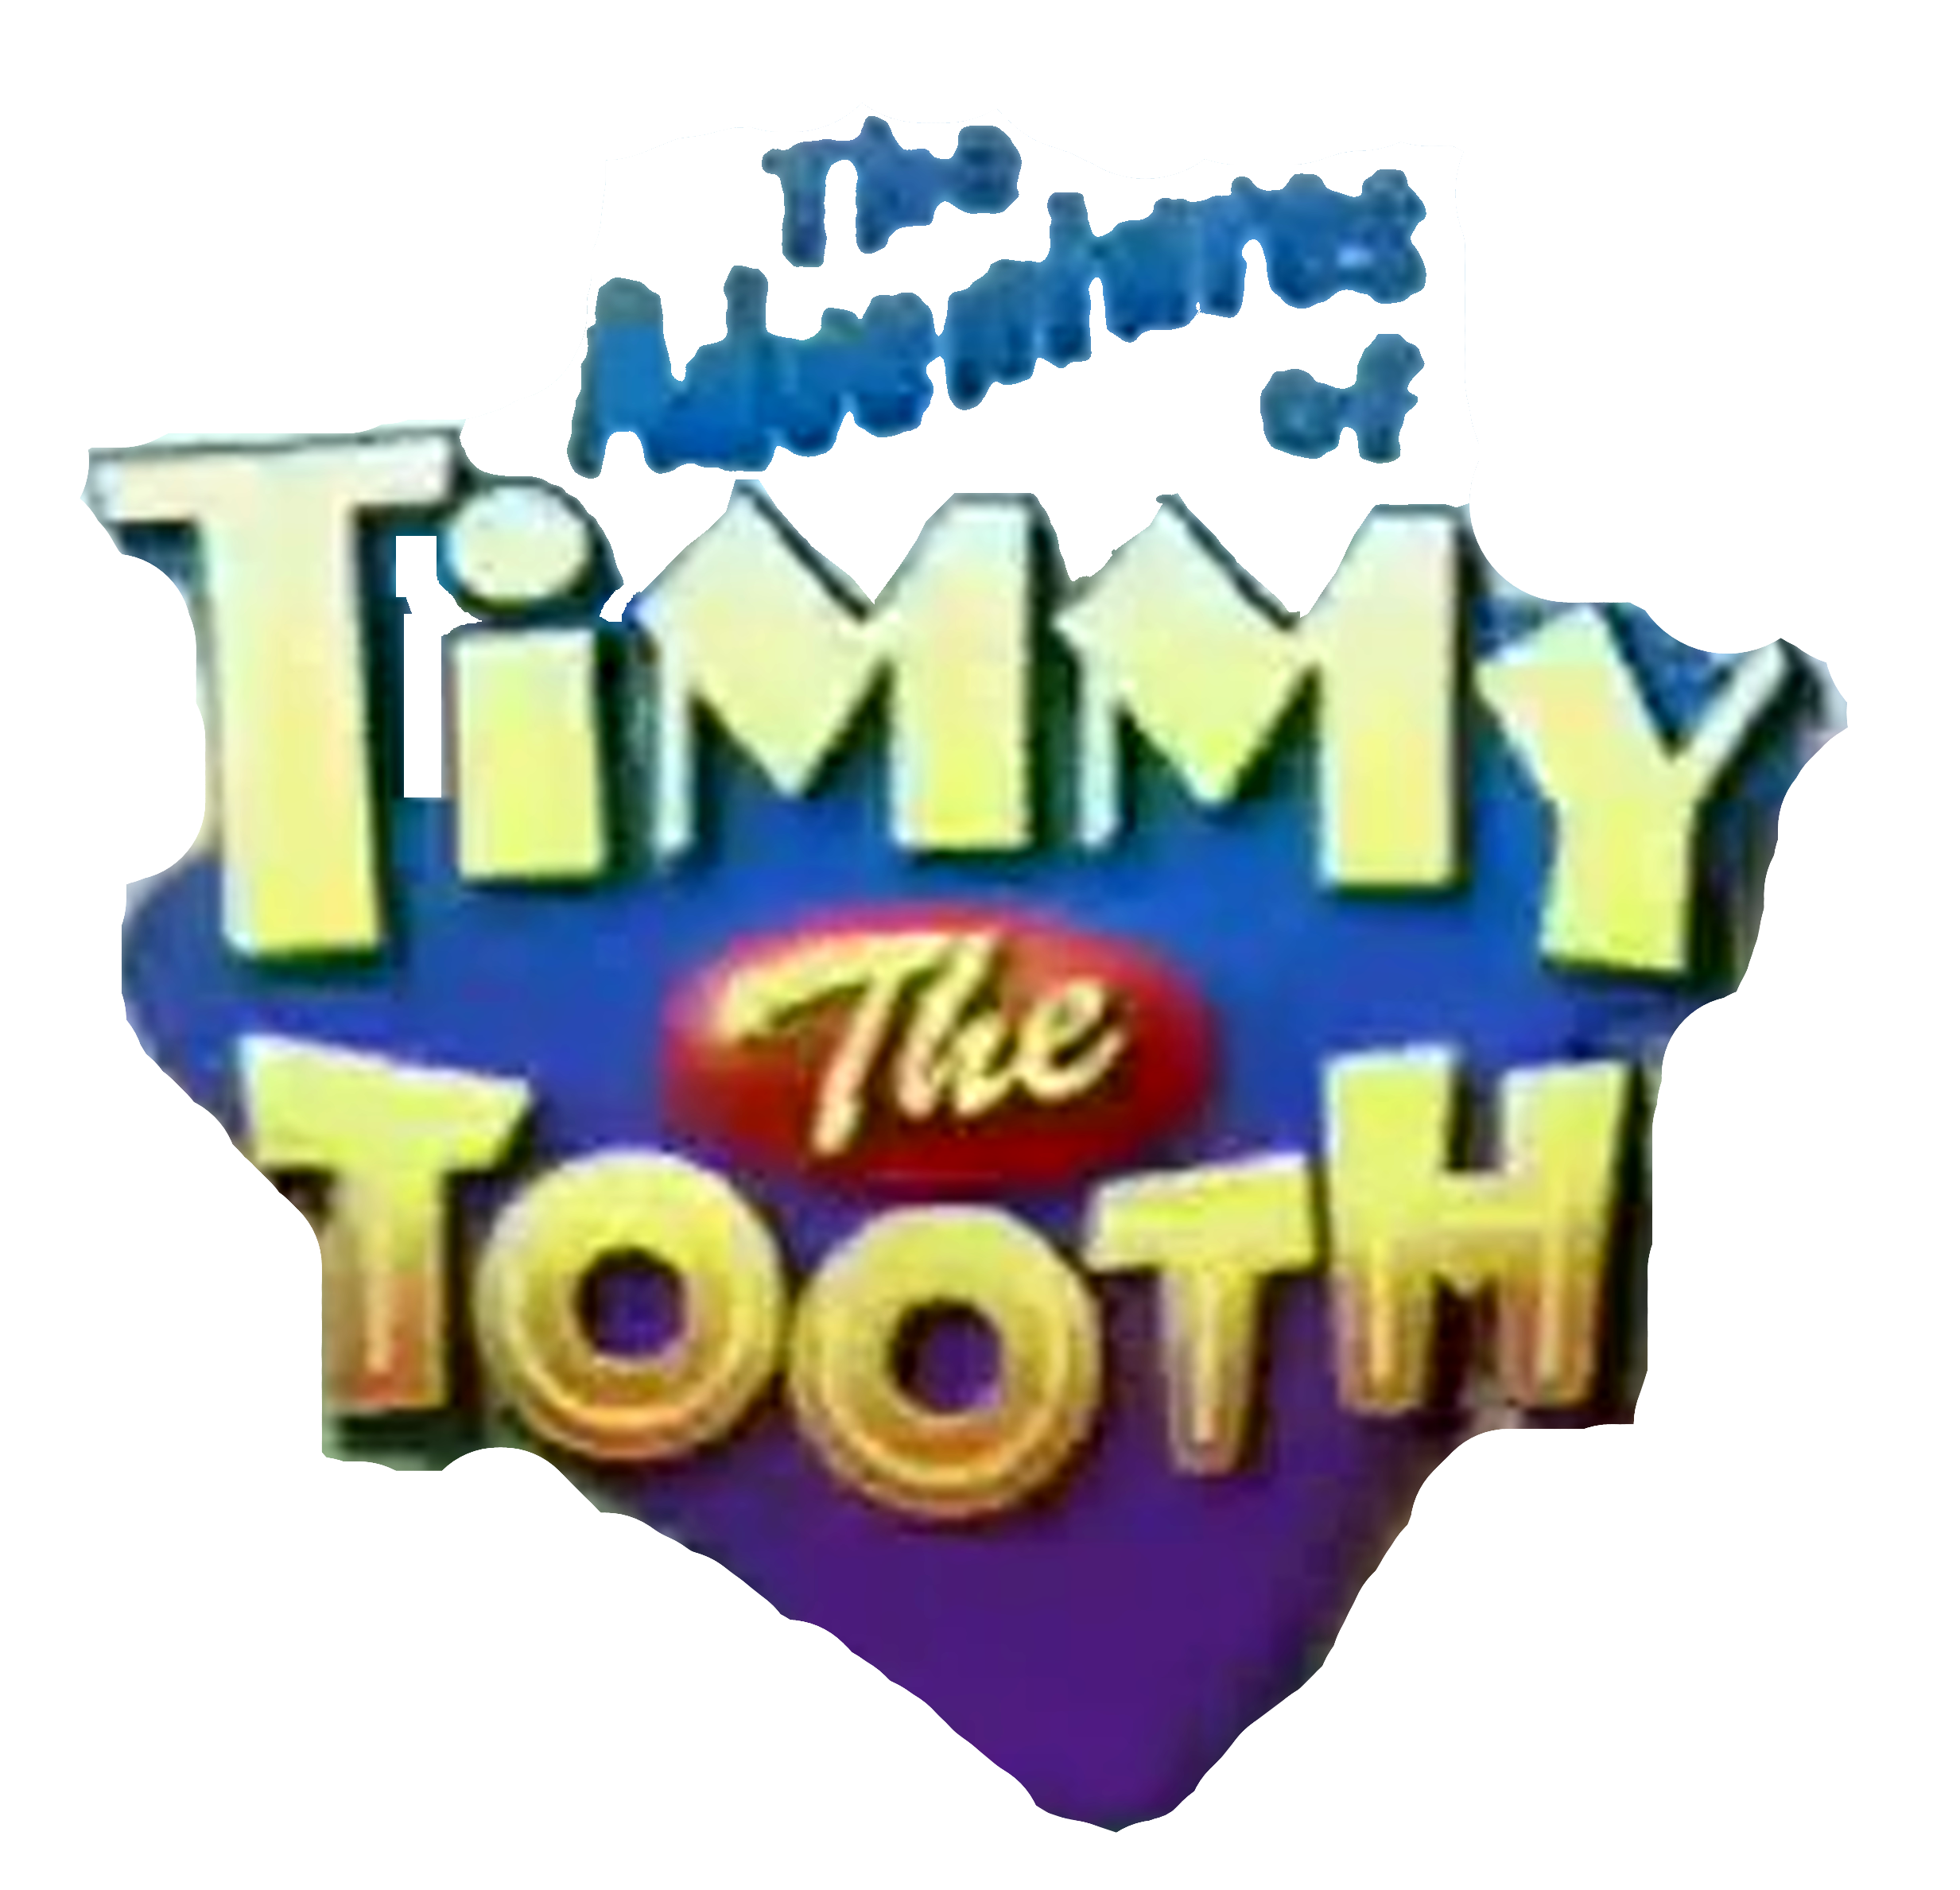 Tooth clipart plain. The adventures of timmy